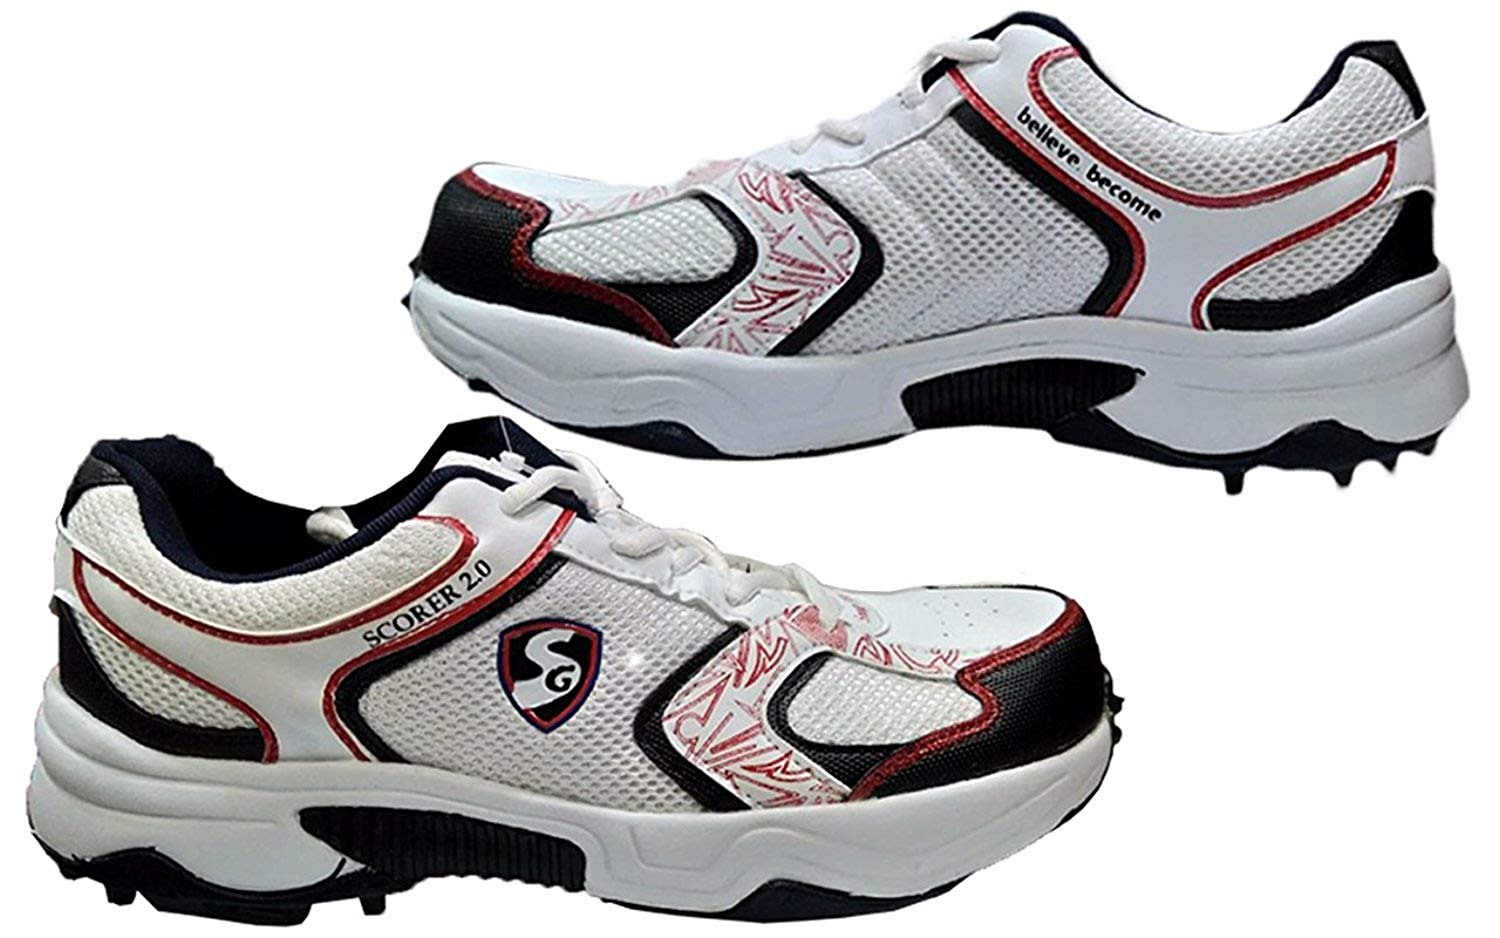 SG Buy Cricket Shoes Bowling/Batting Running Rubber Sports Shoes-Studs Boots